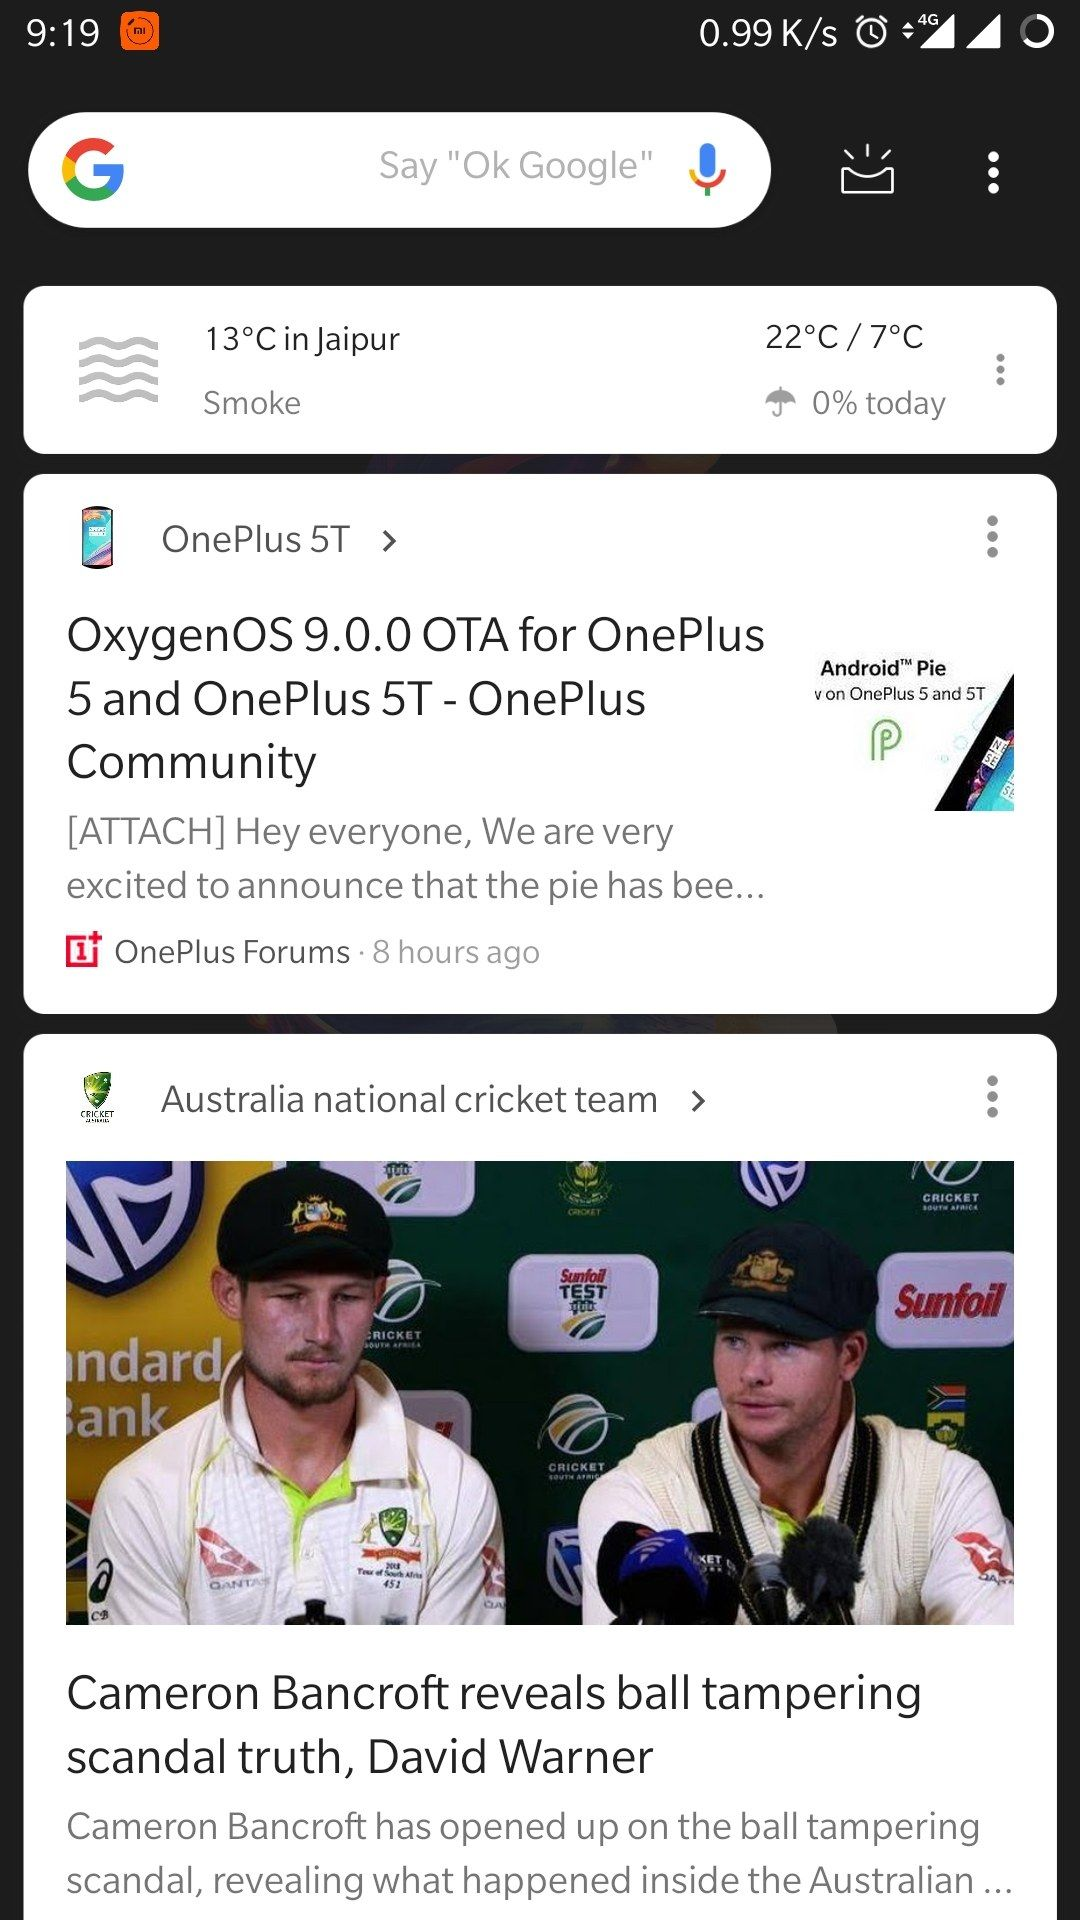 Dark google feed/discover feed on oneplus5 - OnePlus Community